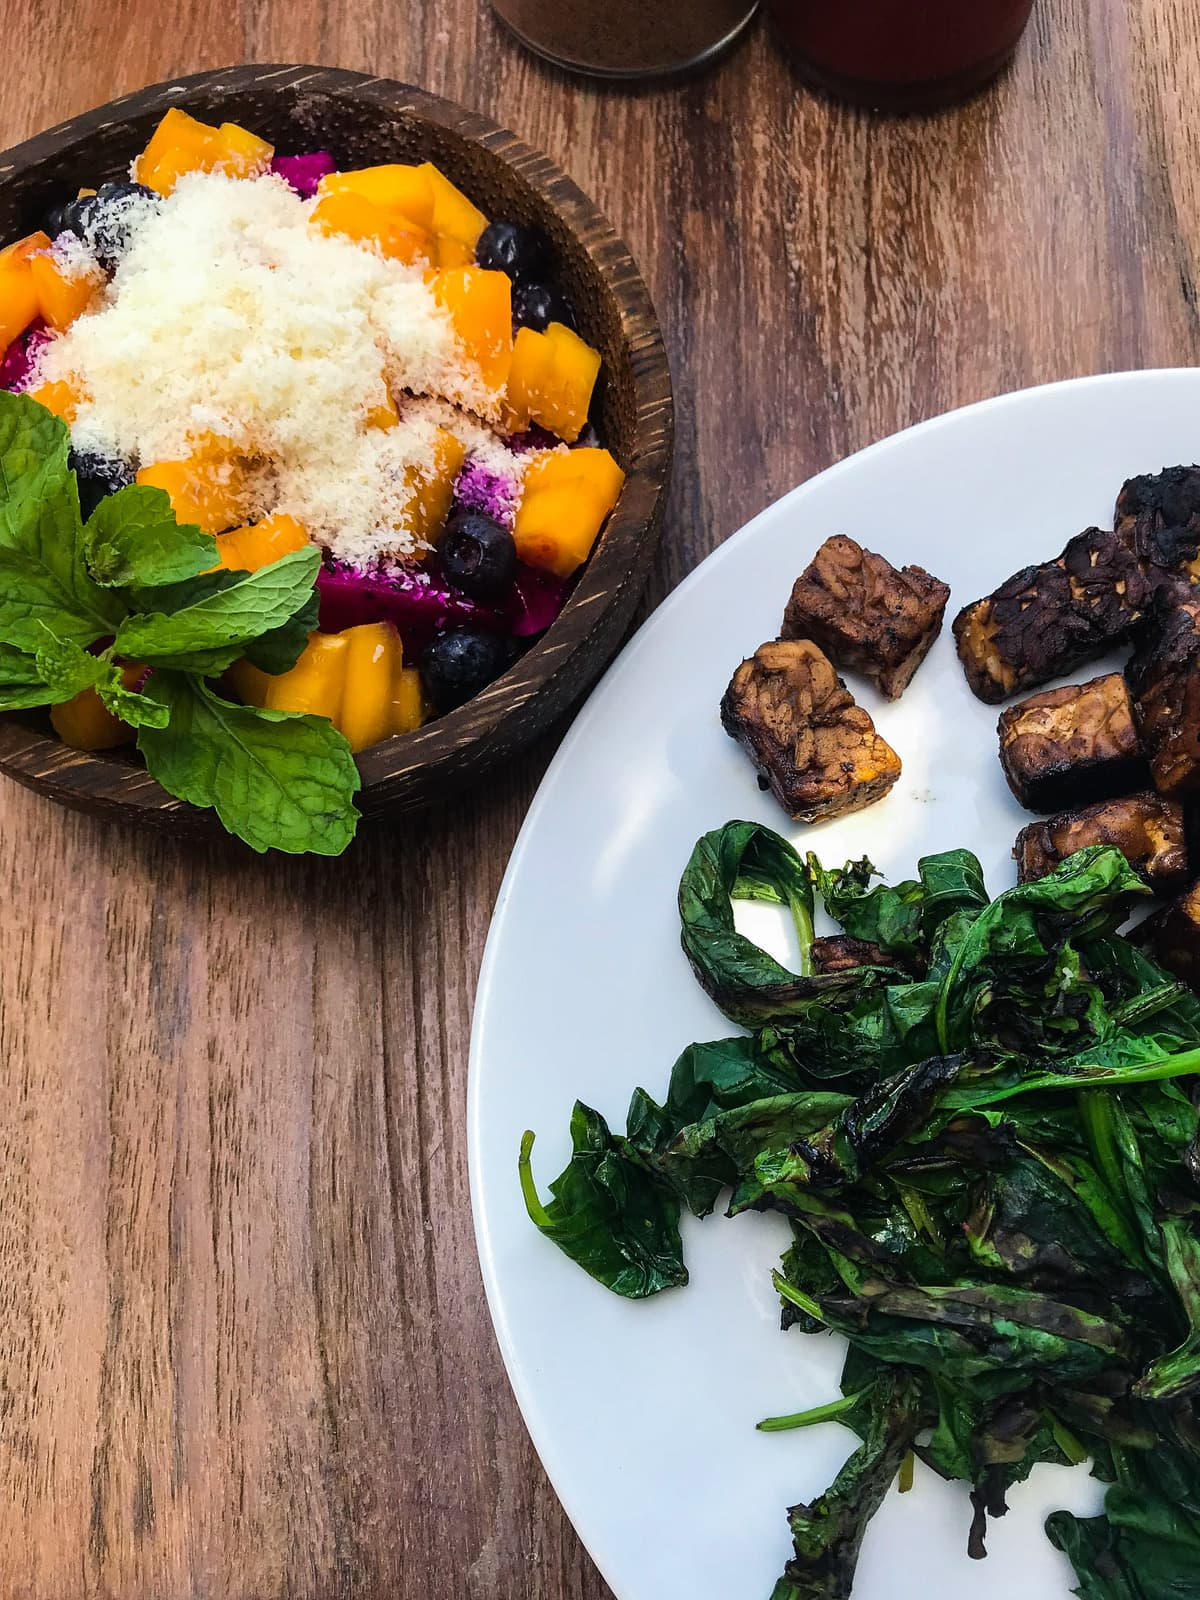 A plate of tempeh and sauteed greens with a bowl of tropical fruit on the side.